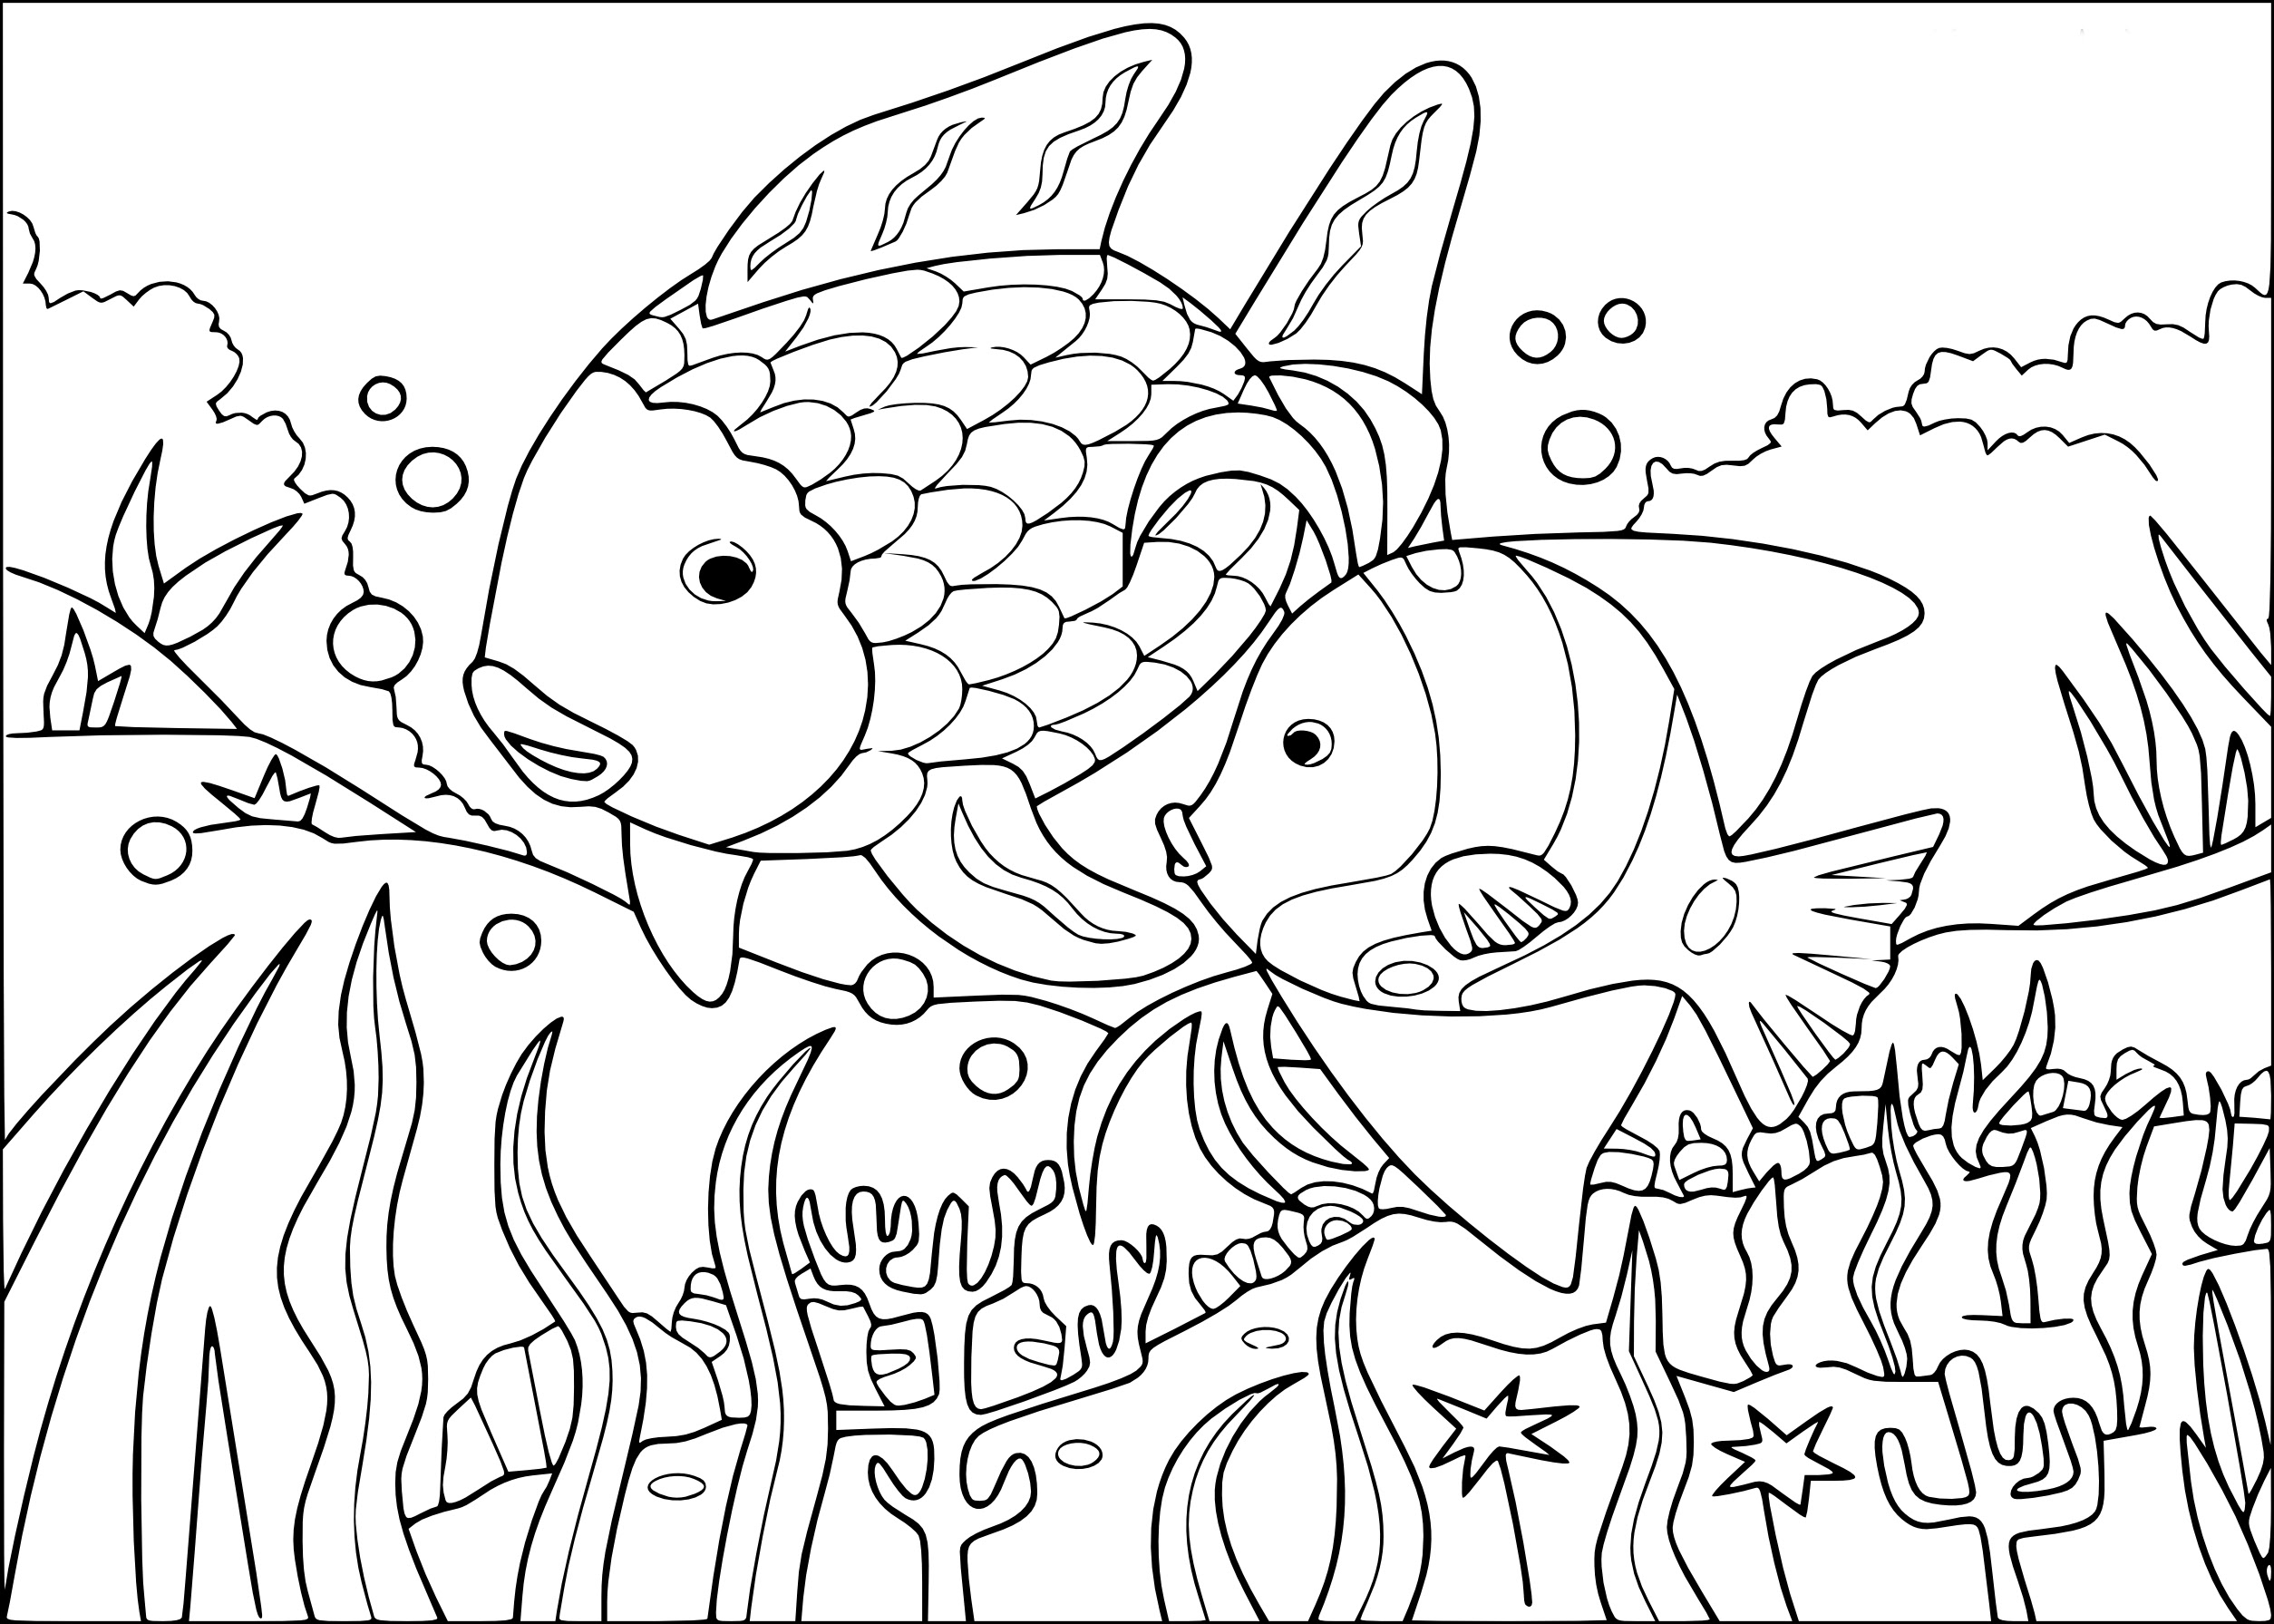 coloriagepoissonstropicaux